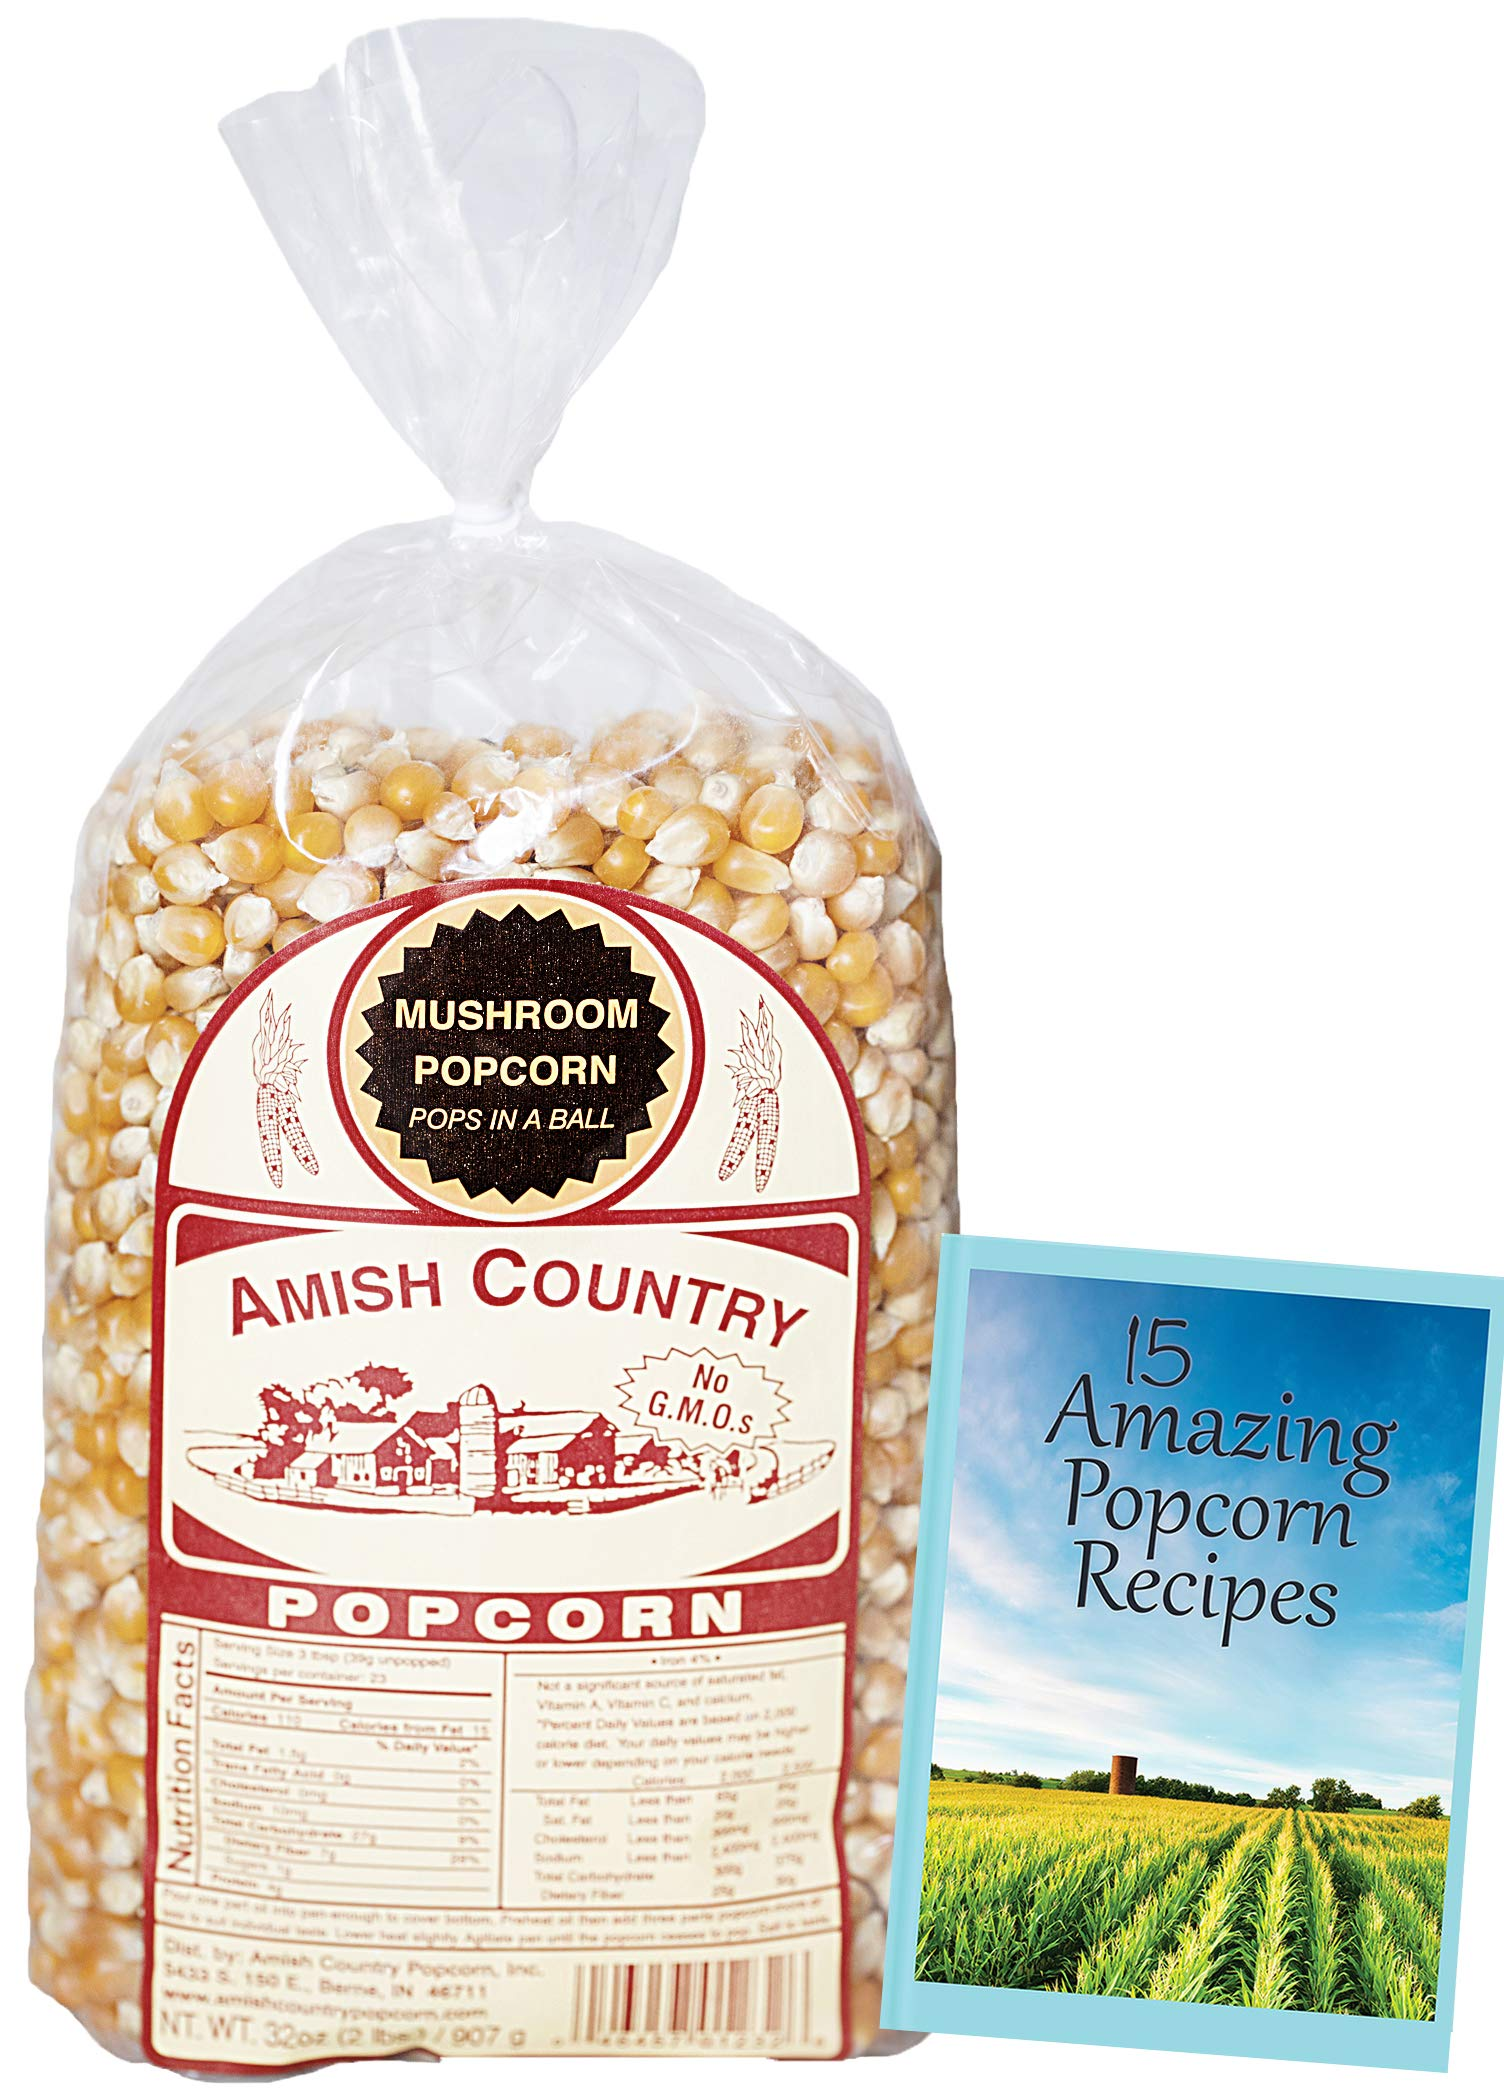 Amish Country Popcorn - Mushroom Popcorn (2 Pound Bag) With Recipe Guide - Old Fashioned, Non GMO, Gluten Free, Microwaveable, Stovetop and Air Popper Friendly by Amish Country Popcorn (Image #2)